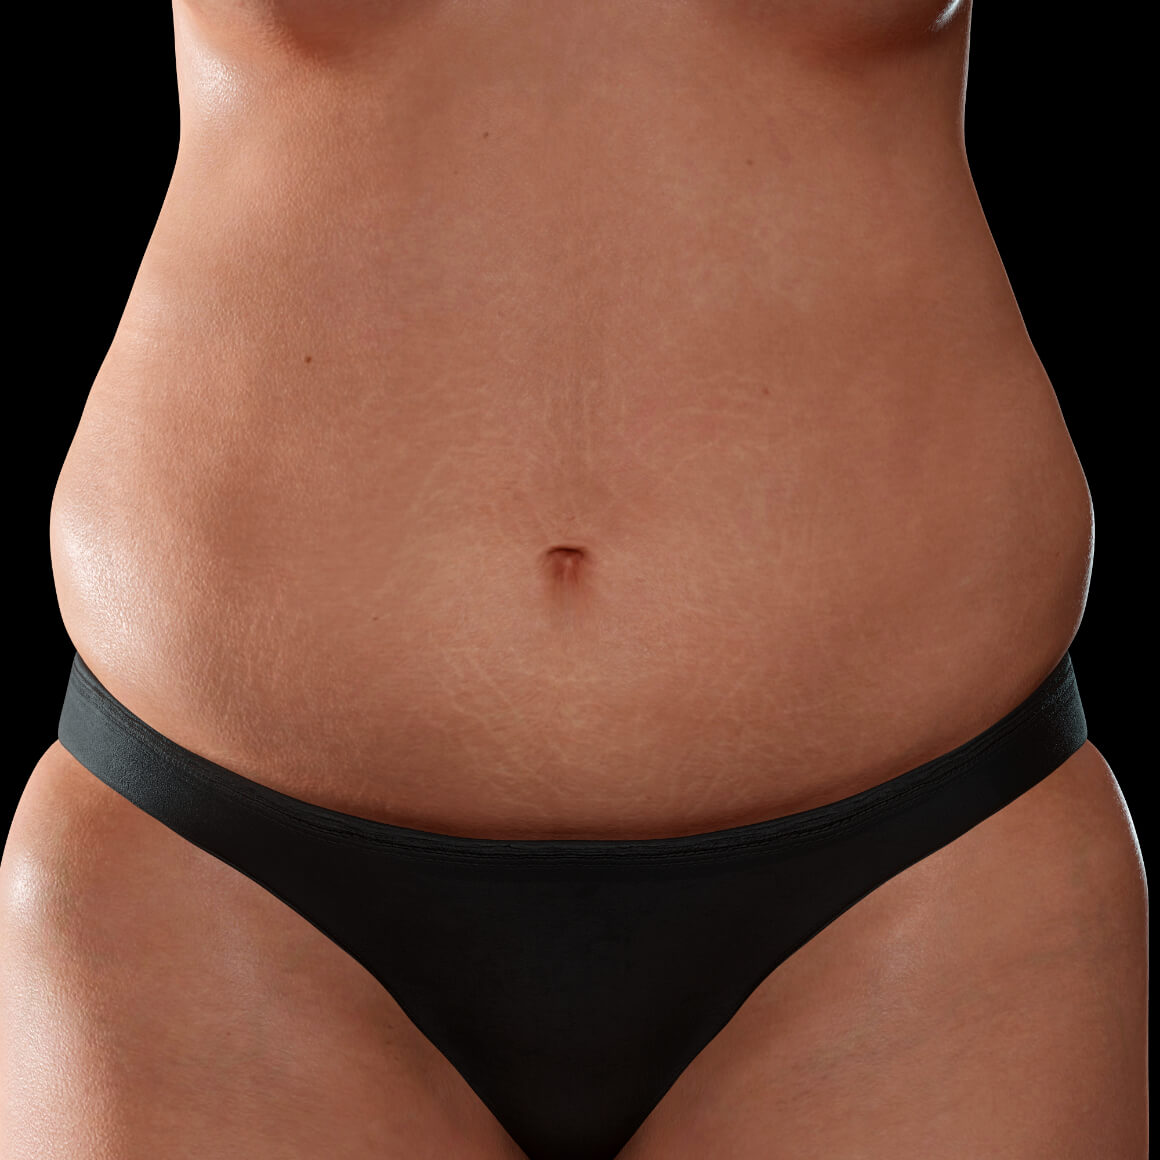 Female patient from Clinique Chloé facing front after fractional laser treatments for stretch marks